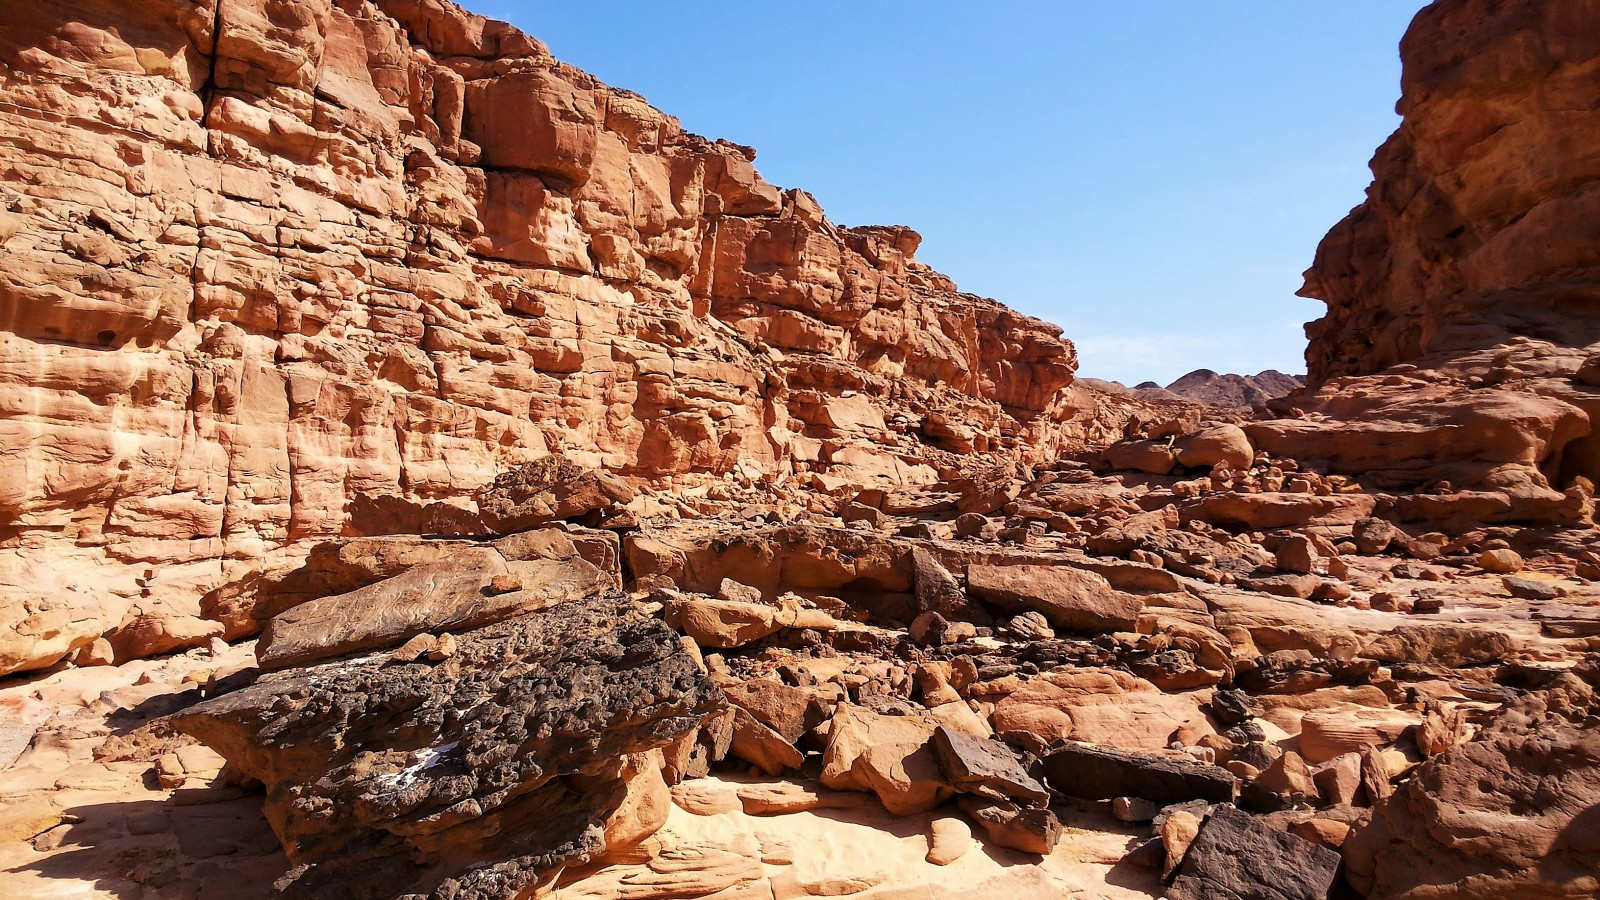 Mount Sinai and its spectacular range looks over the glorious resort of Sharm el Sheikh